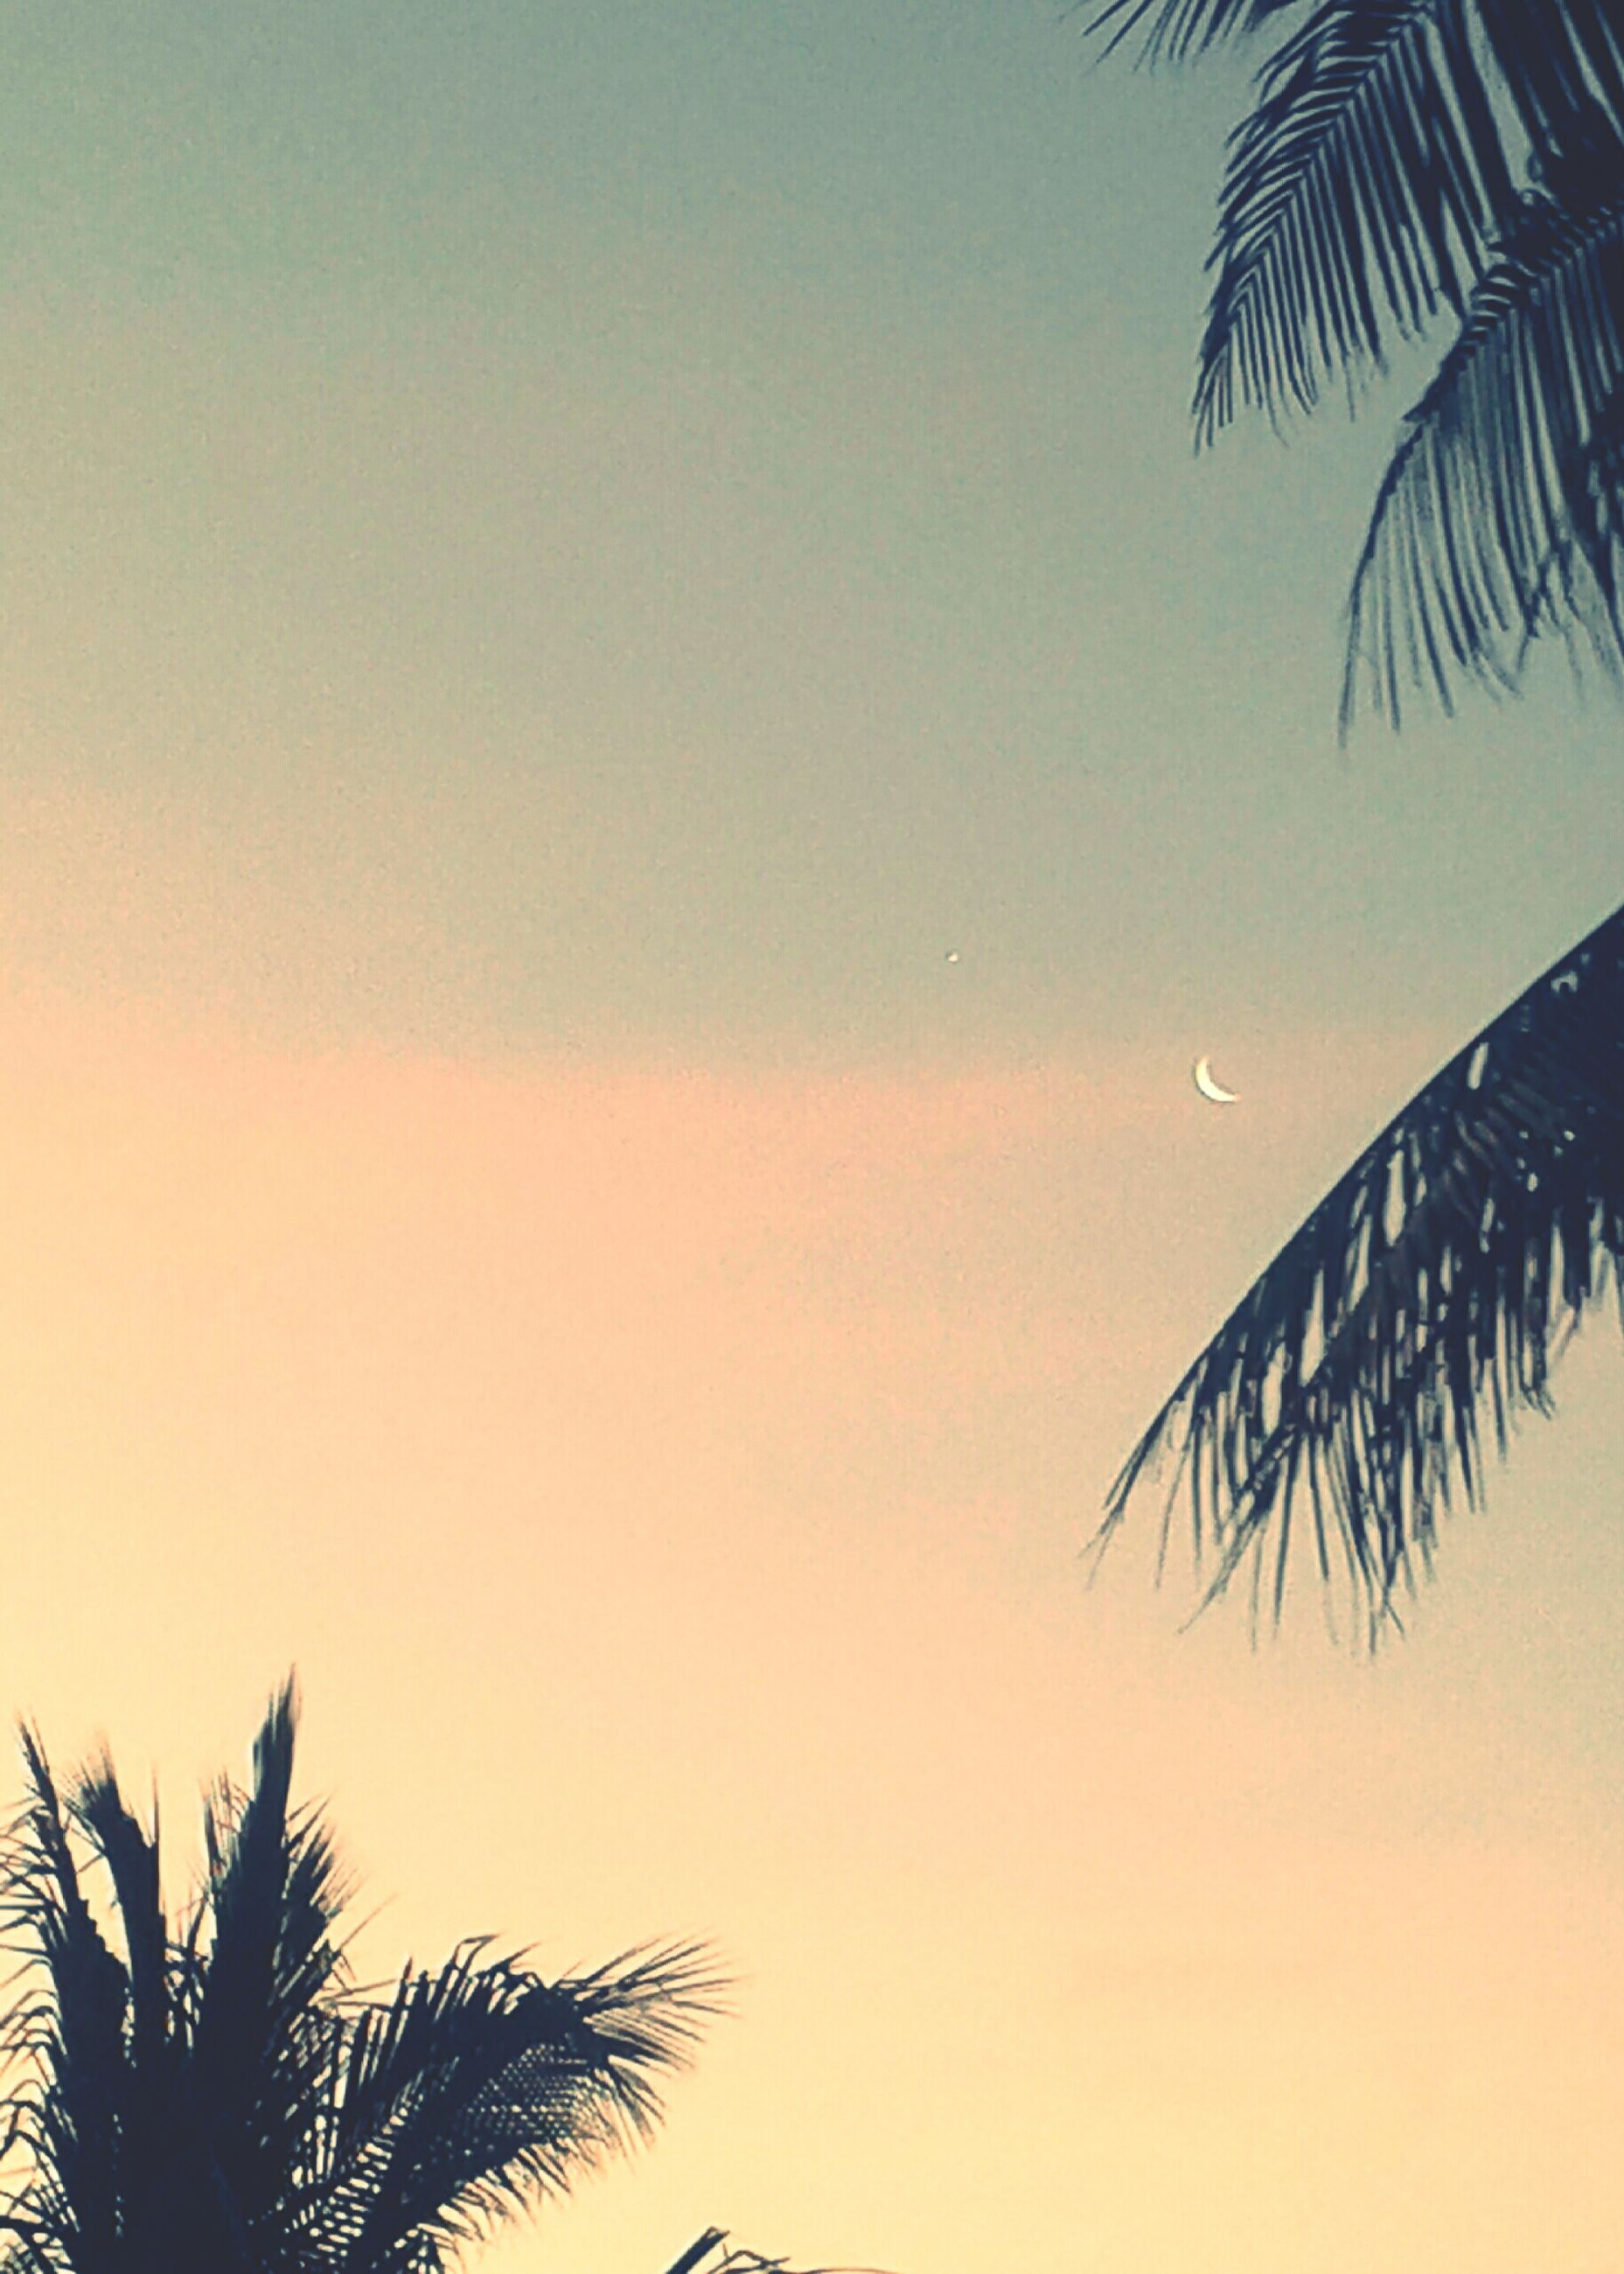 palm tree, tree, sunset, palm frond, palm leaf, silhouette, sky, outdoors, no people, nature, beauty in nature, low angle view, frond, growth, clear sky, tranquility, scenics, leaf, day, close-up